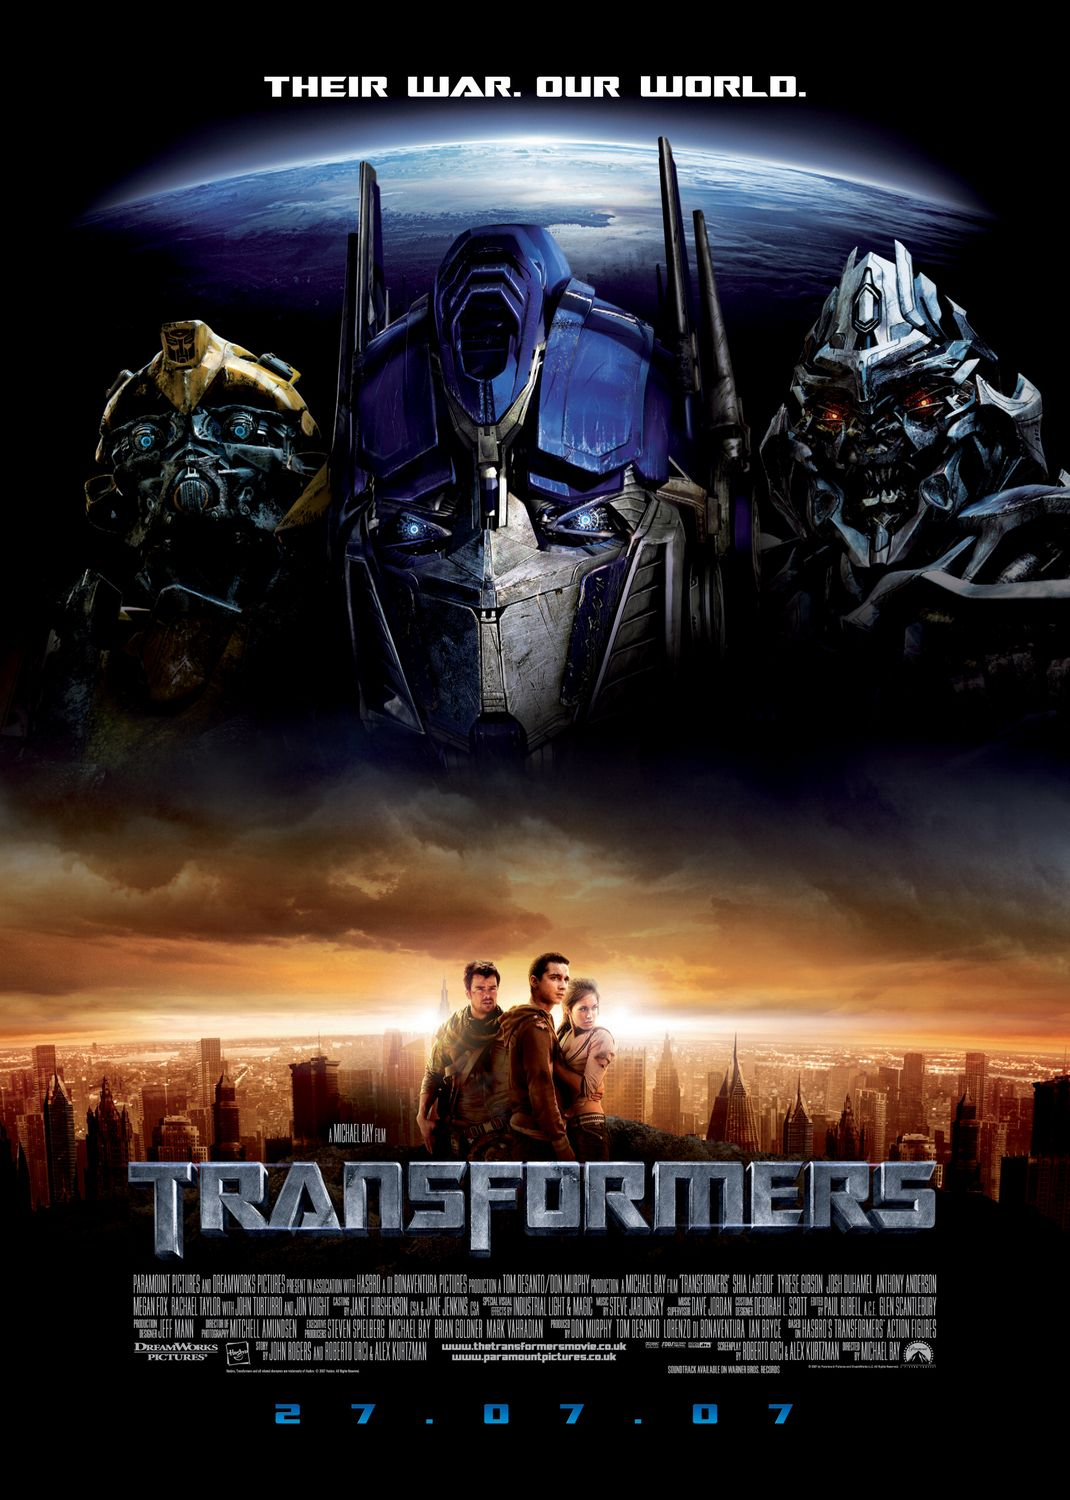 Transformers 1 (2007) ταινιες online seires oipeirates greek subs